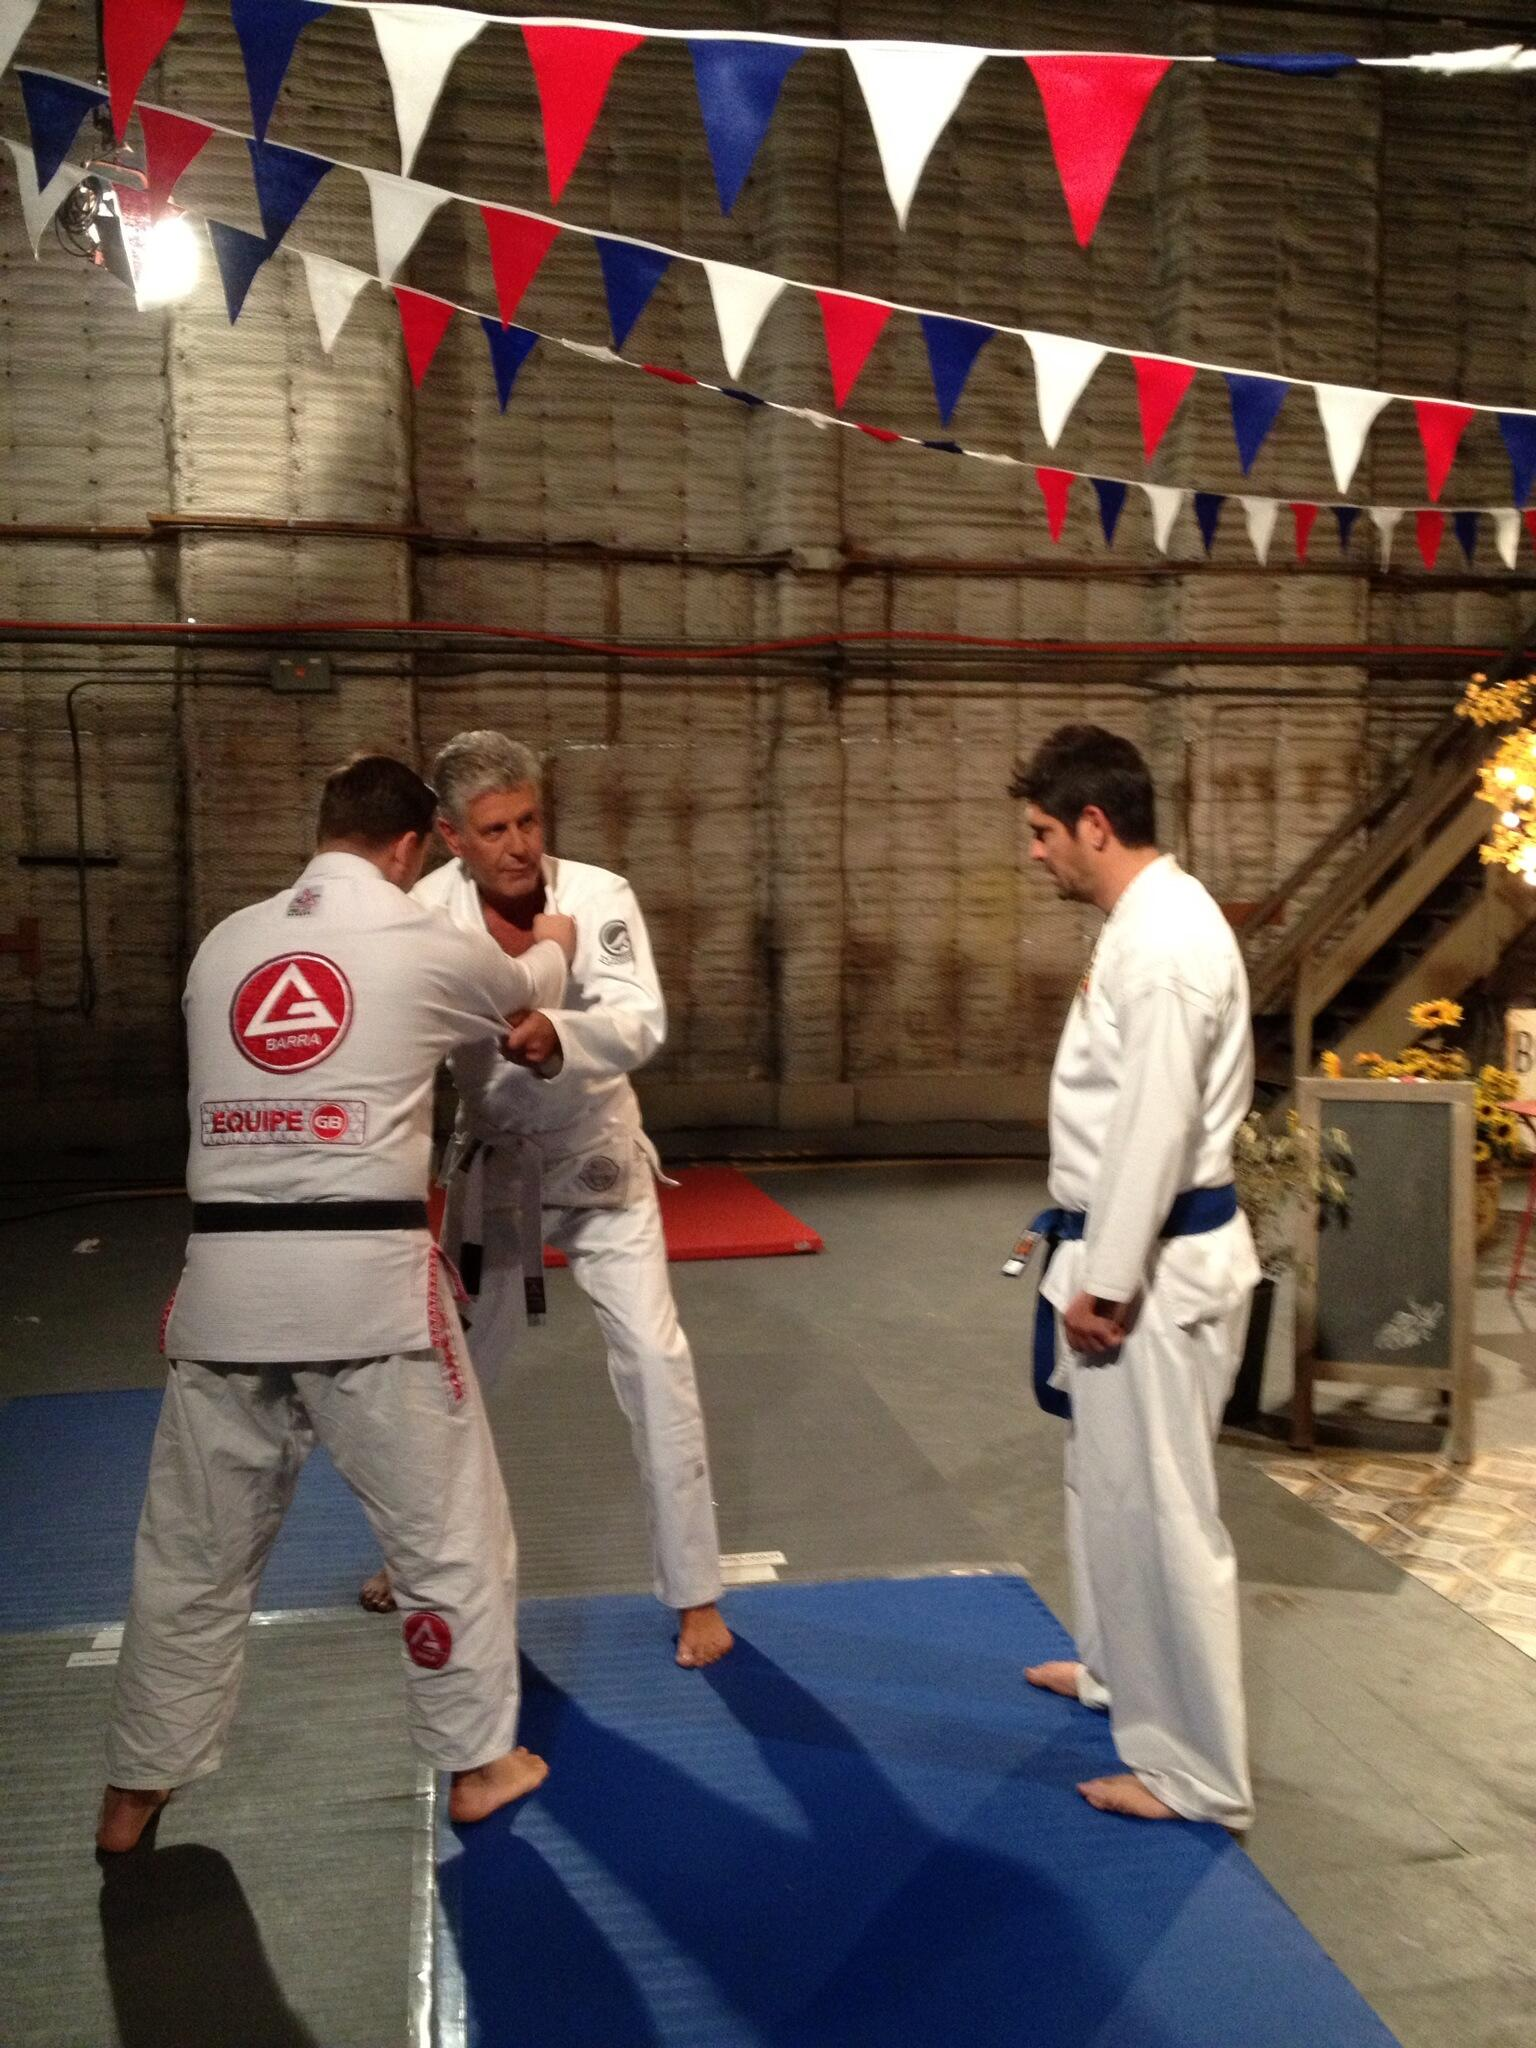 ". @chefludo ""My jiu jitsu will beat..your karate!"" @TheTasteABC  #crippledmasters #kimurathefrench http://t.co/SMSXKMLIte"